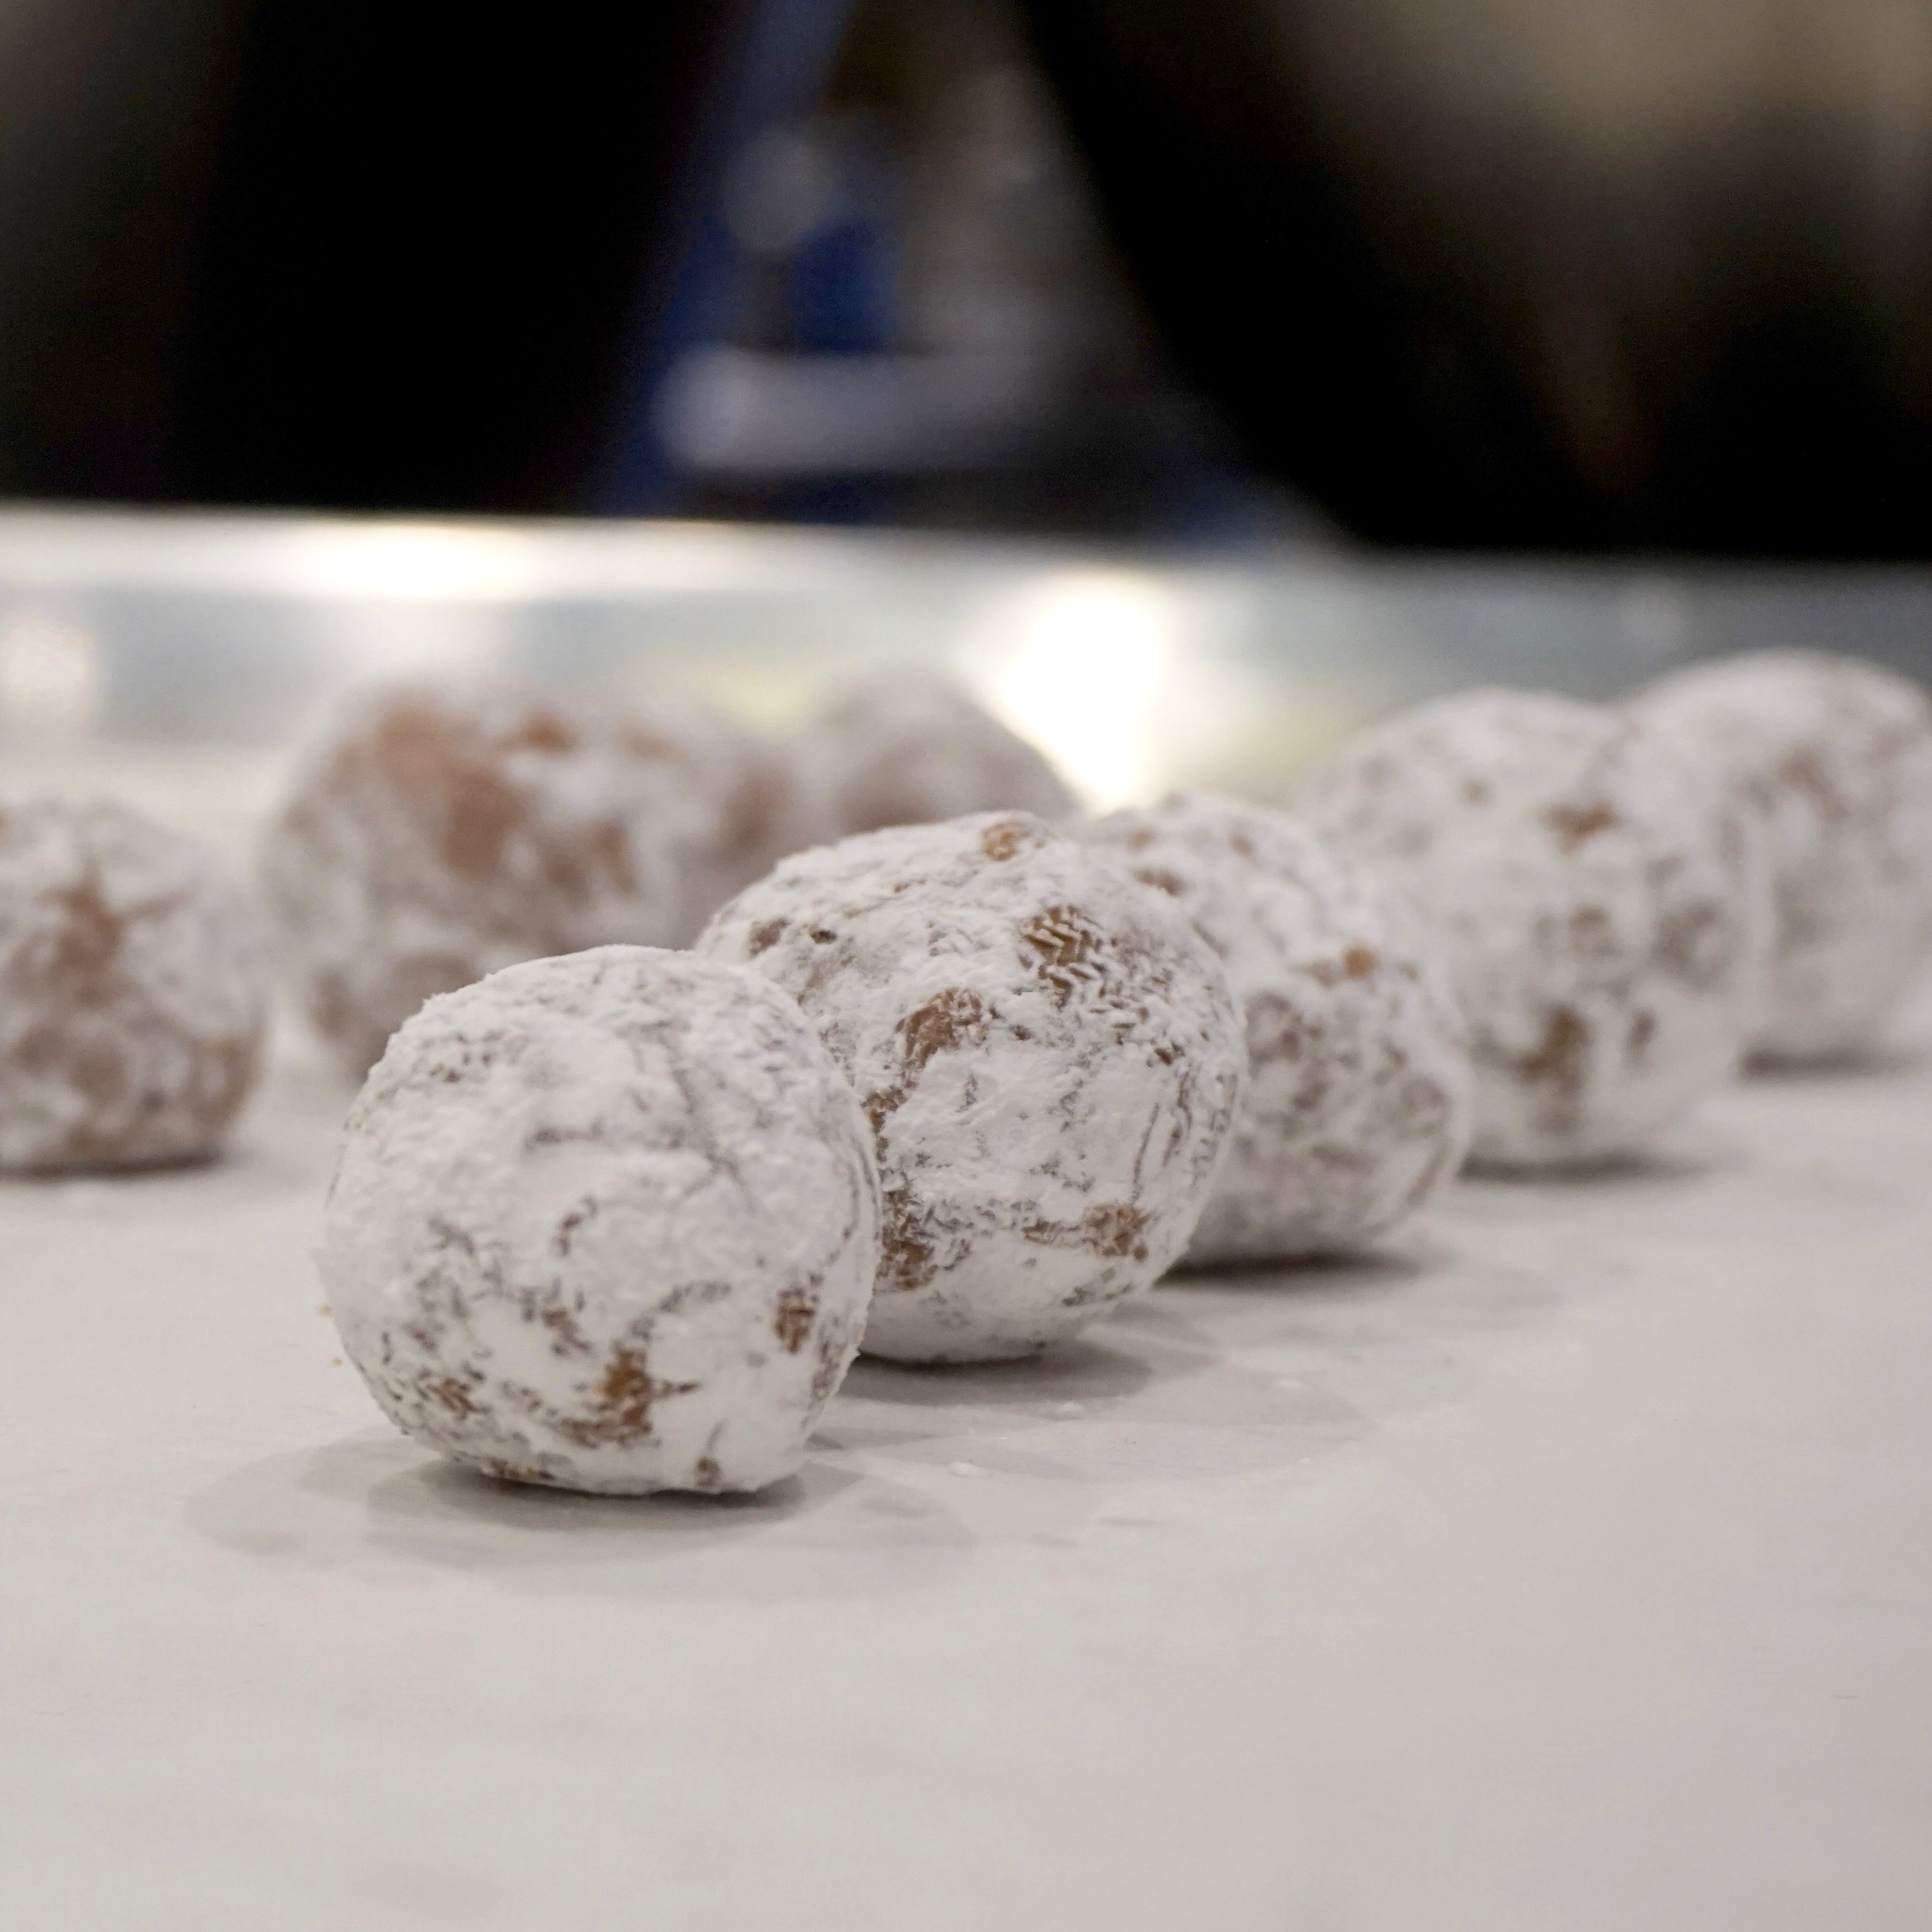 Basic Hand-rolled Chocolate Truffles